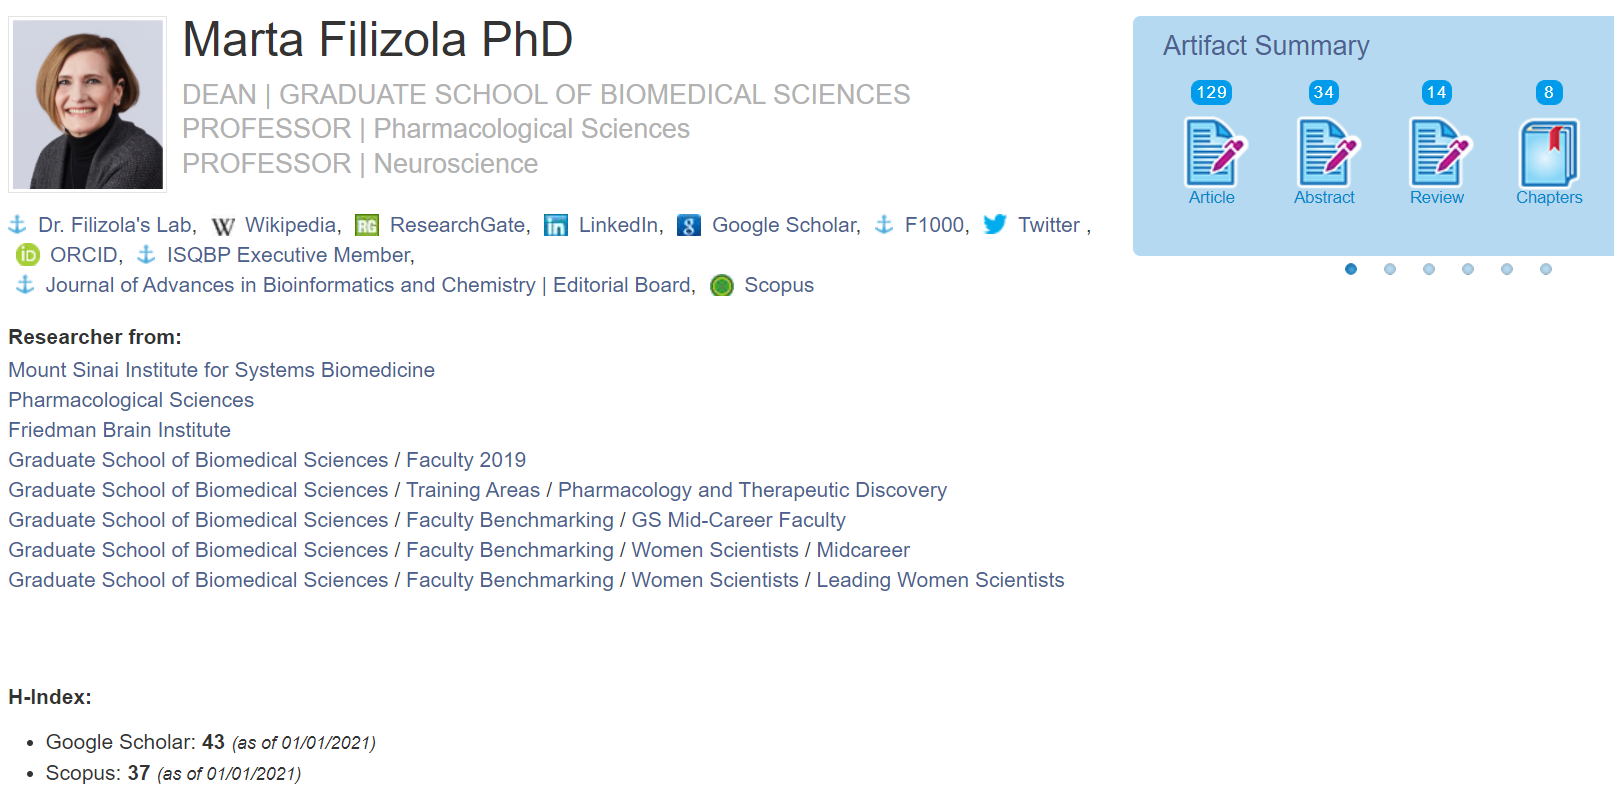 Example of a PlumX profile: Marta Filizola, showing departments, h-index, research artifact counts, and links